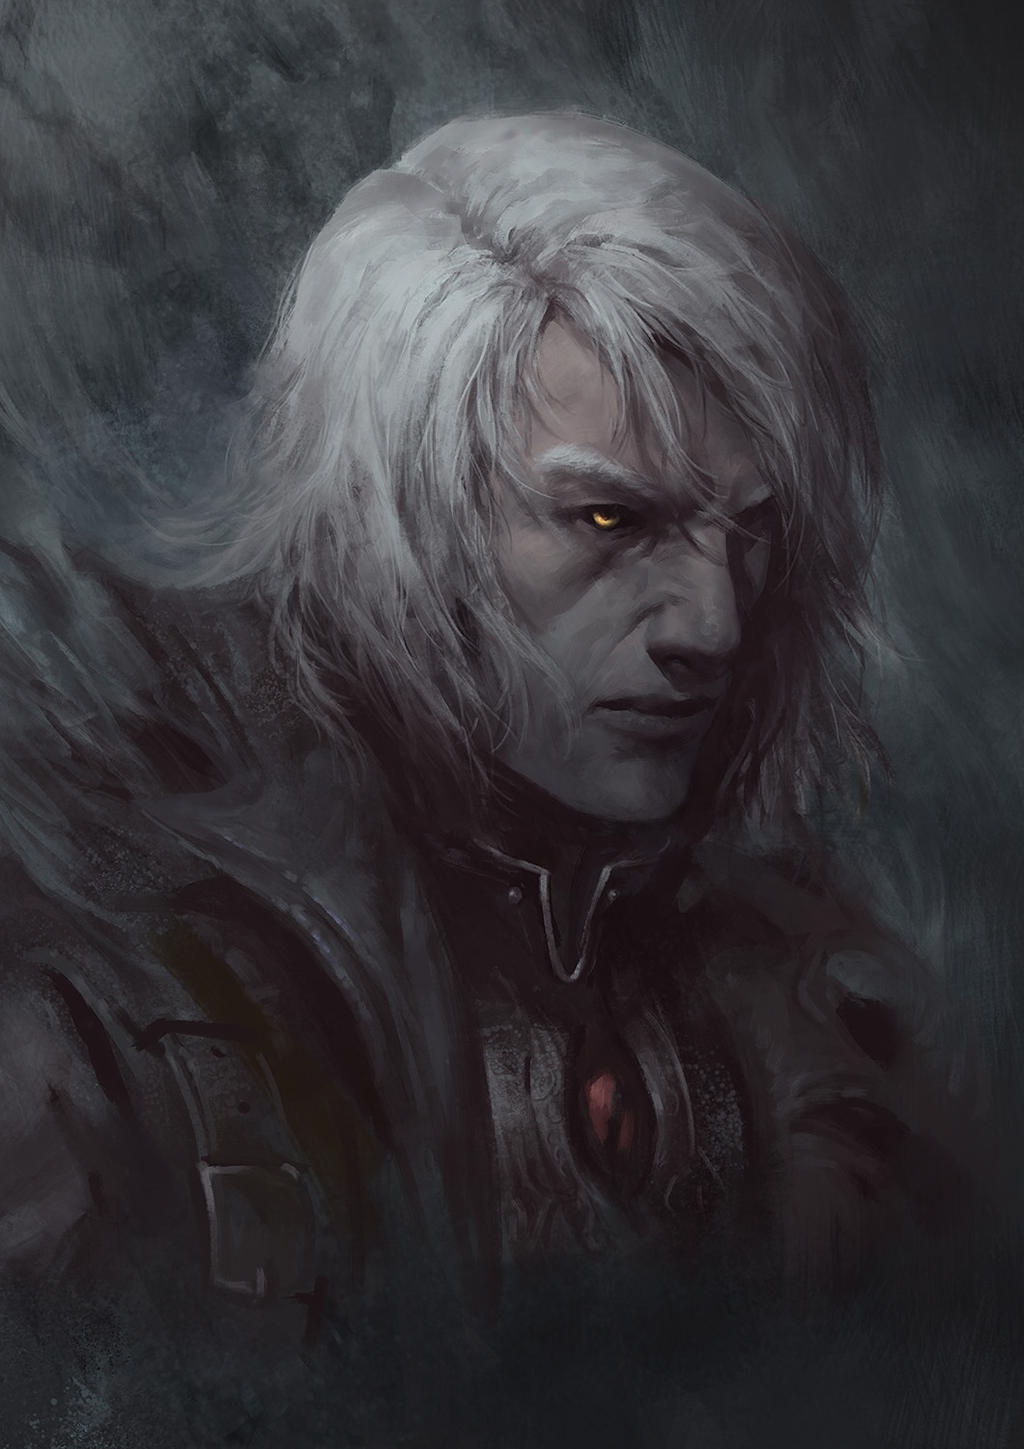 sorin markov by billcreative on deviantart